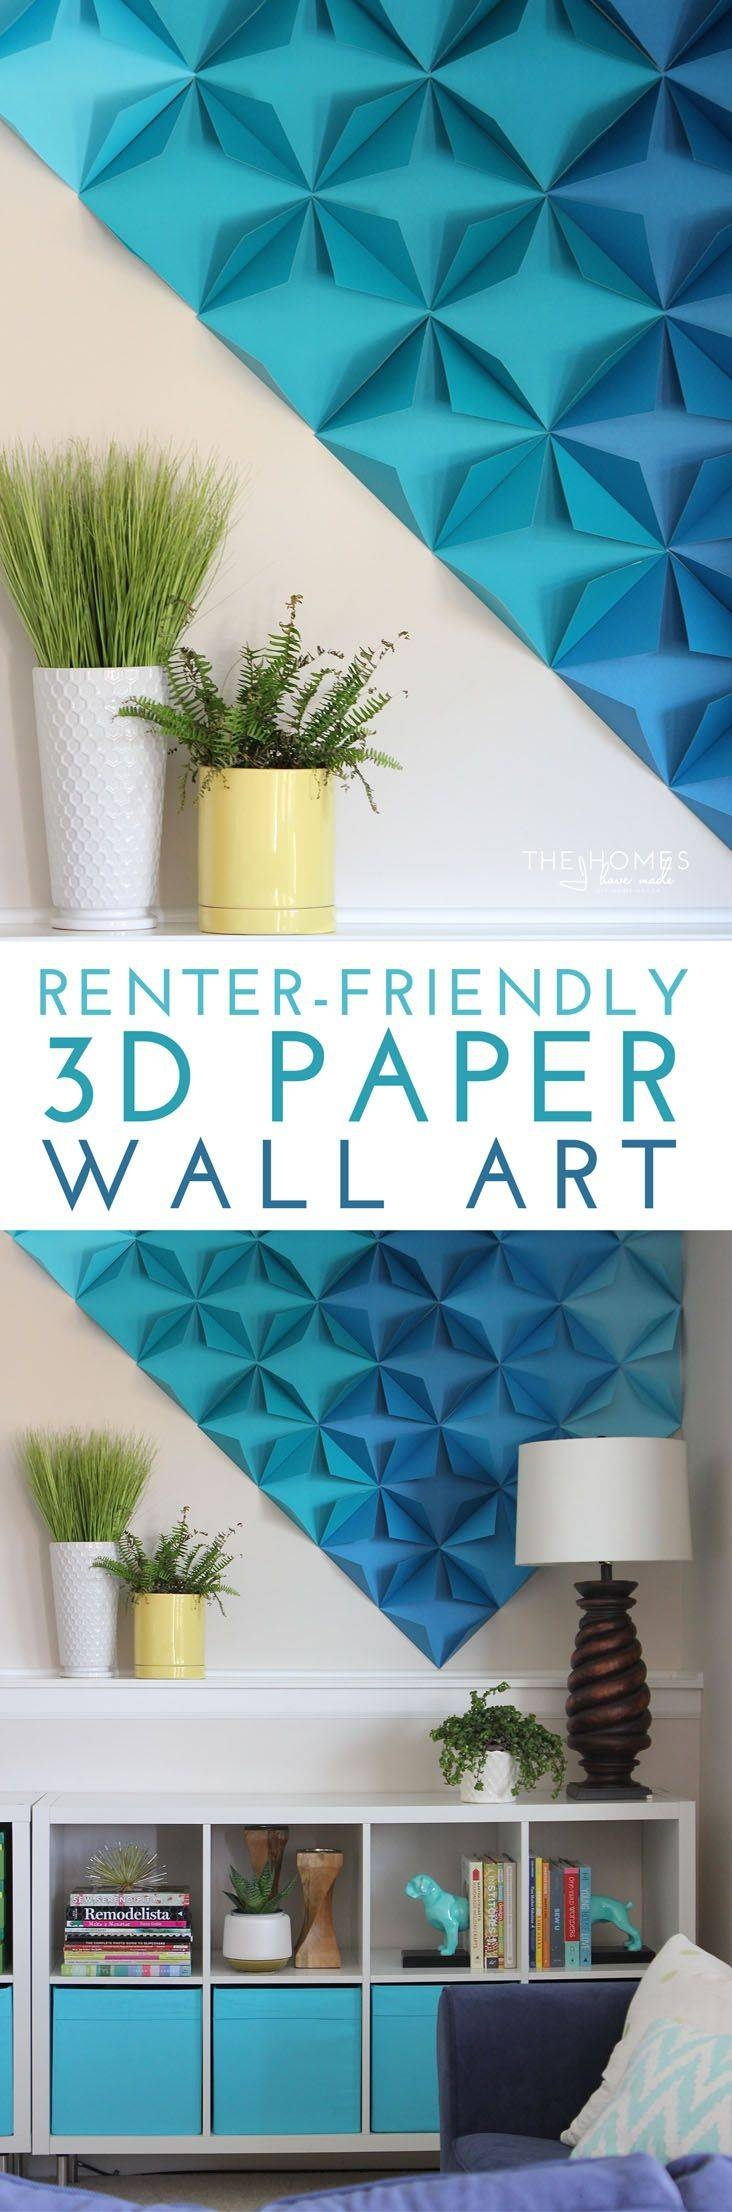 25+ Unique Paper Wall Art Ideas On Pinterest | Toilet Paper Roll Throughout Newest Unique 3D Wall Art (Gallery 6 of 20)